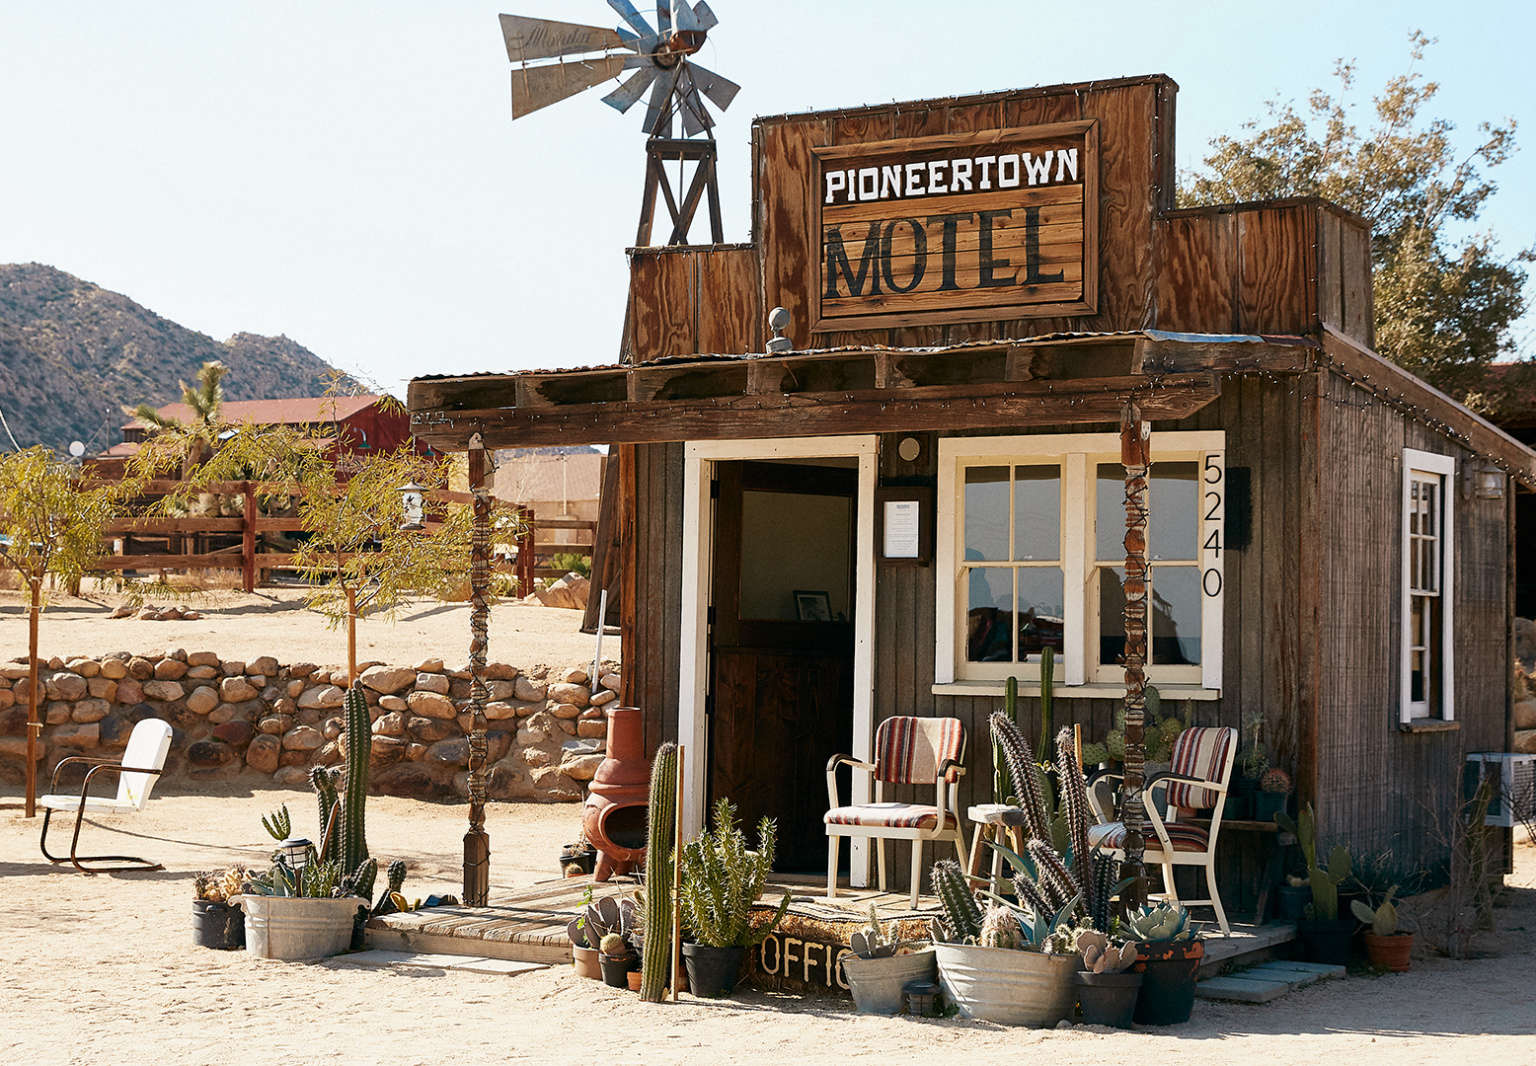 Pioneertown Motel The Old West Made New Again portrait 3